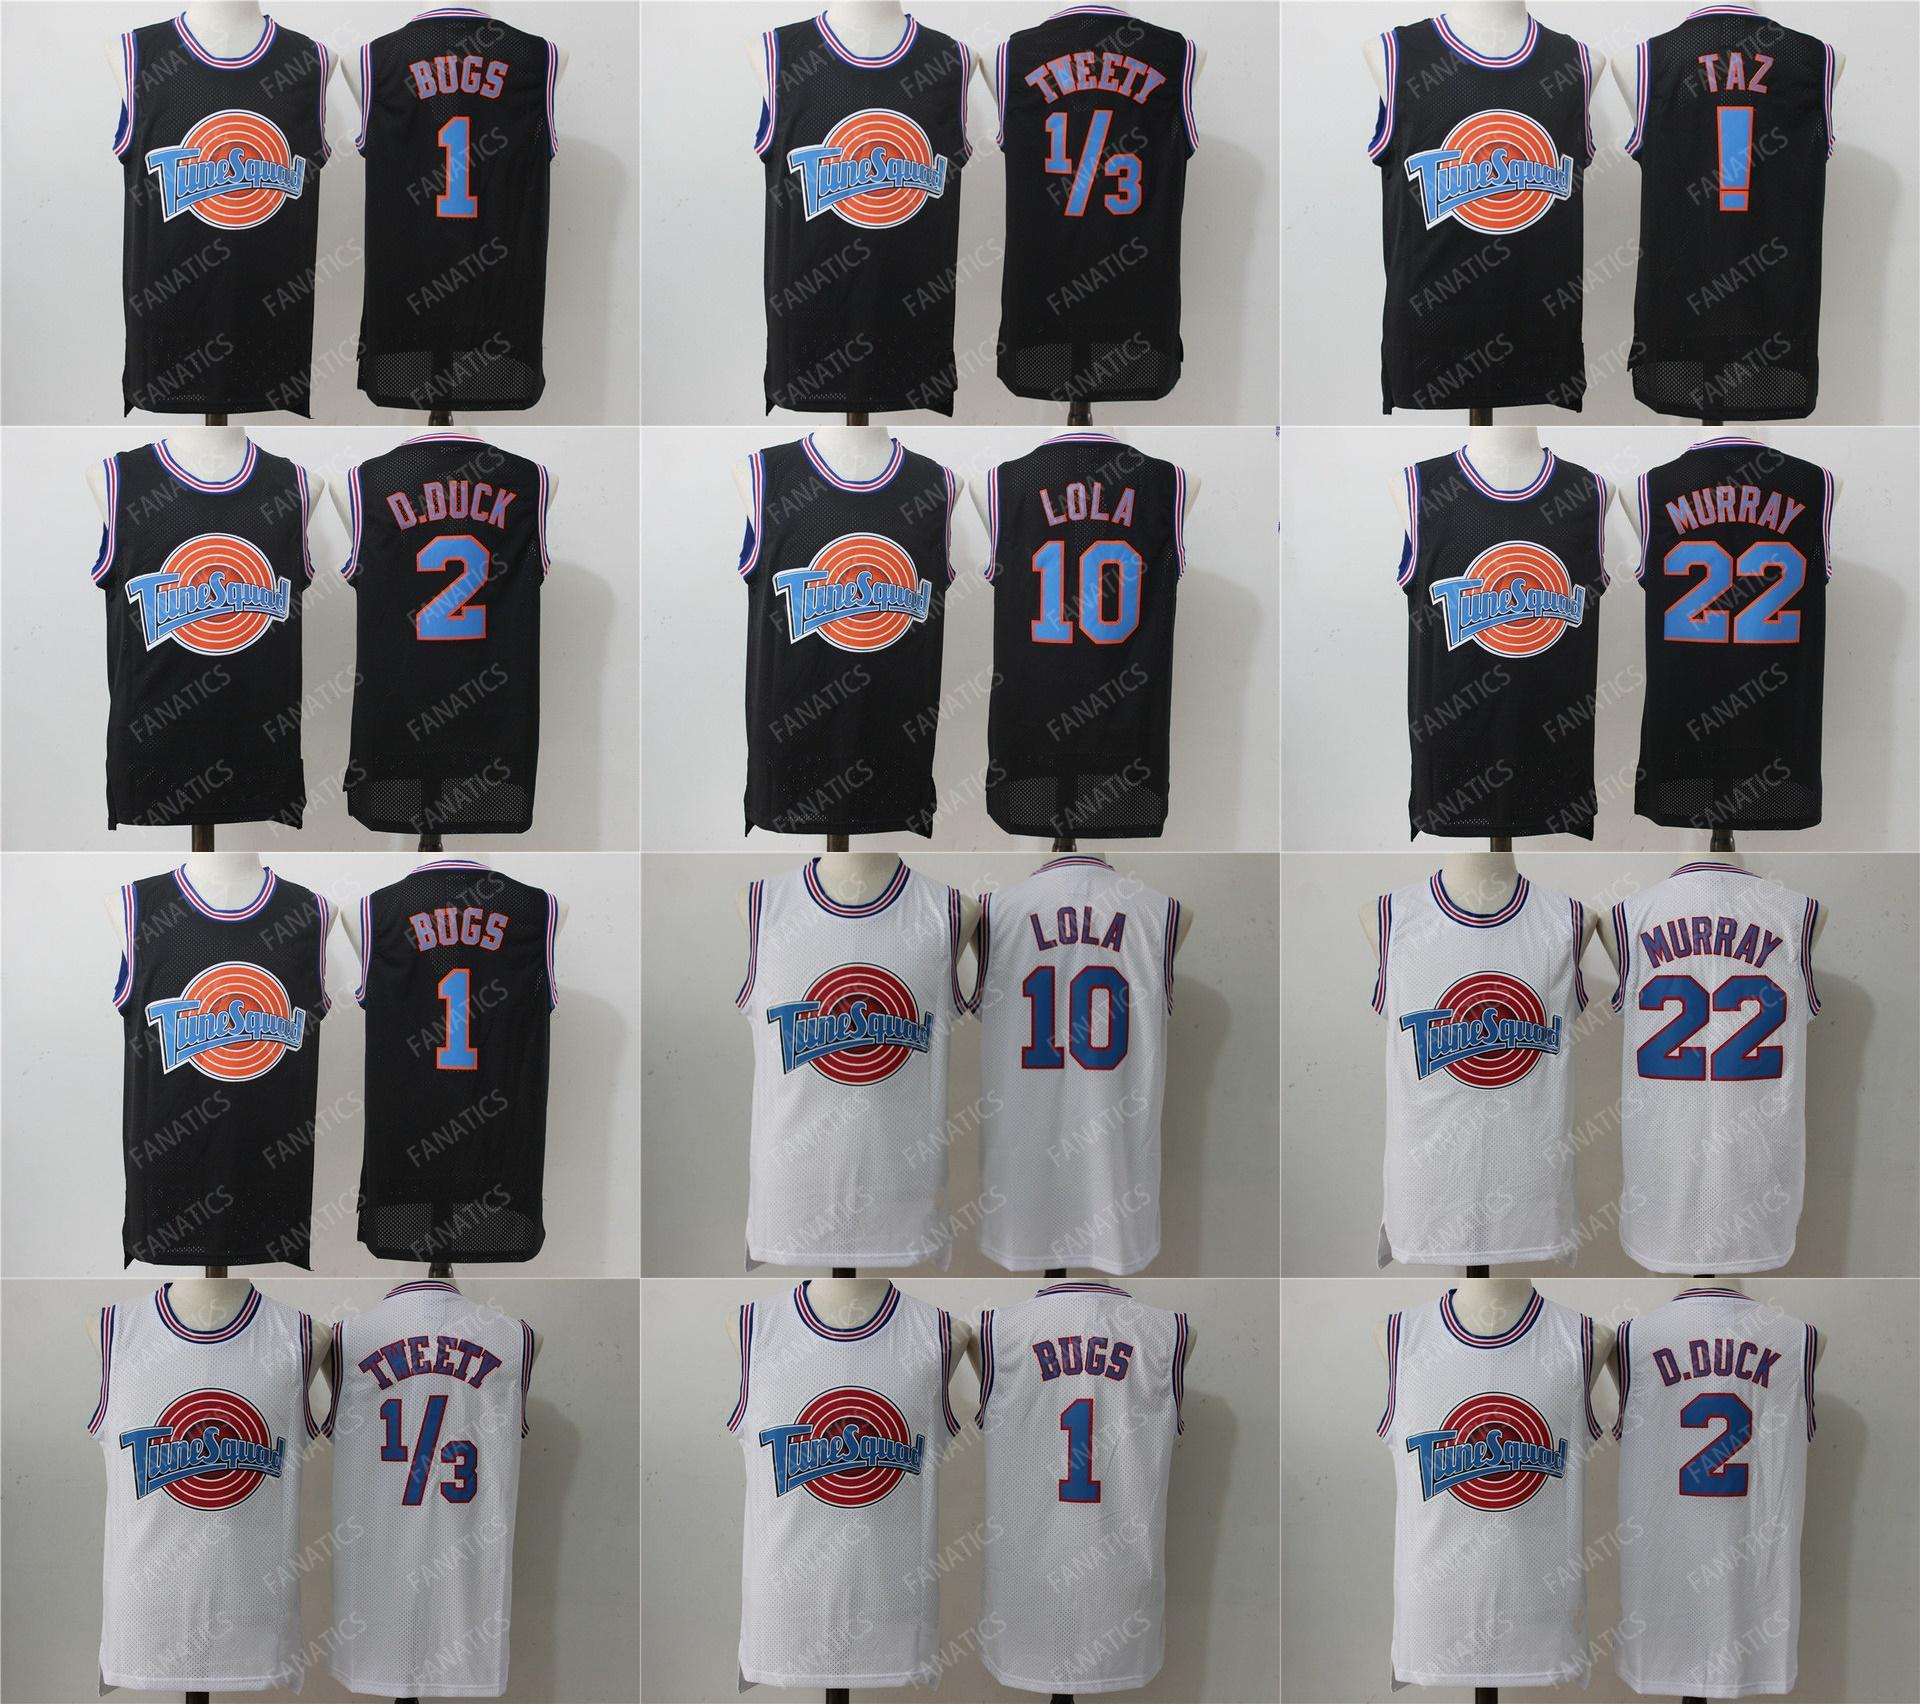 2c10b6671331 2019 Top Mens Youth Space Jam Movie Tune Squad 23 Michael 1 Bugs Bunny !  Taz 1 3 Tweety 22 Bill Murray 10 Lola 2 D.DUCK Basketball Jersey From  Espn sport